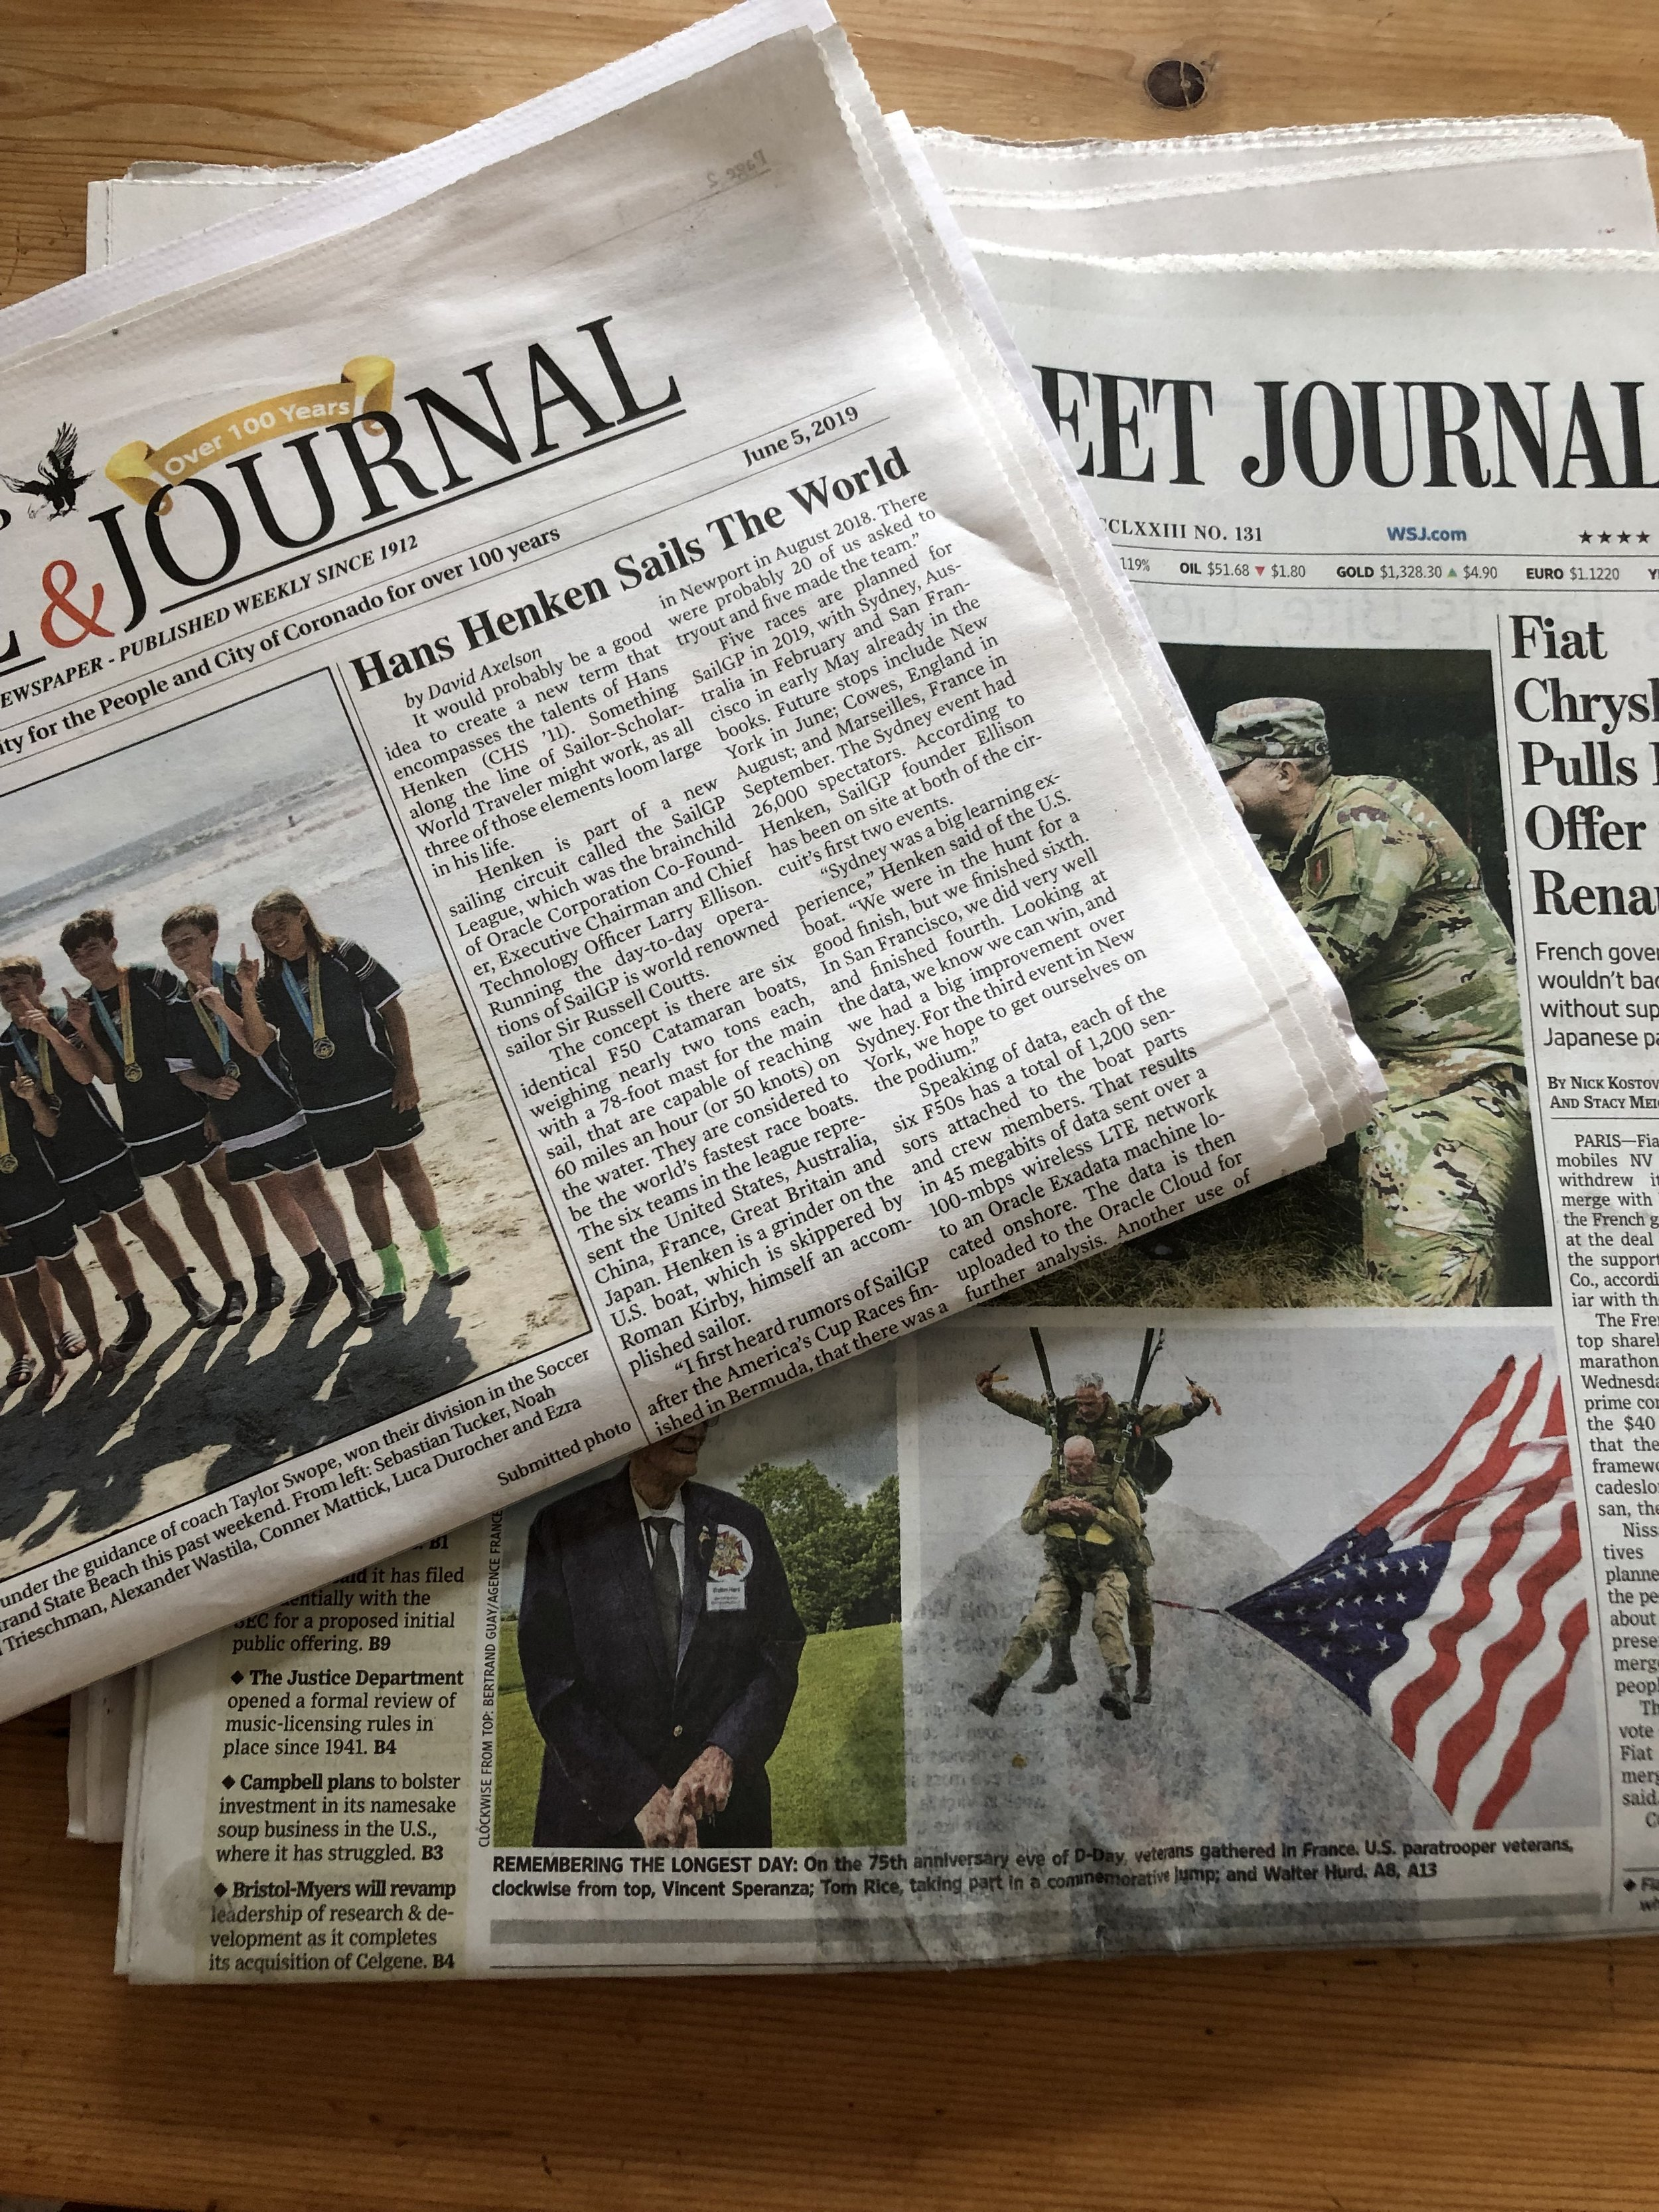 You can find these newspapers online.